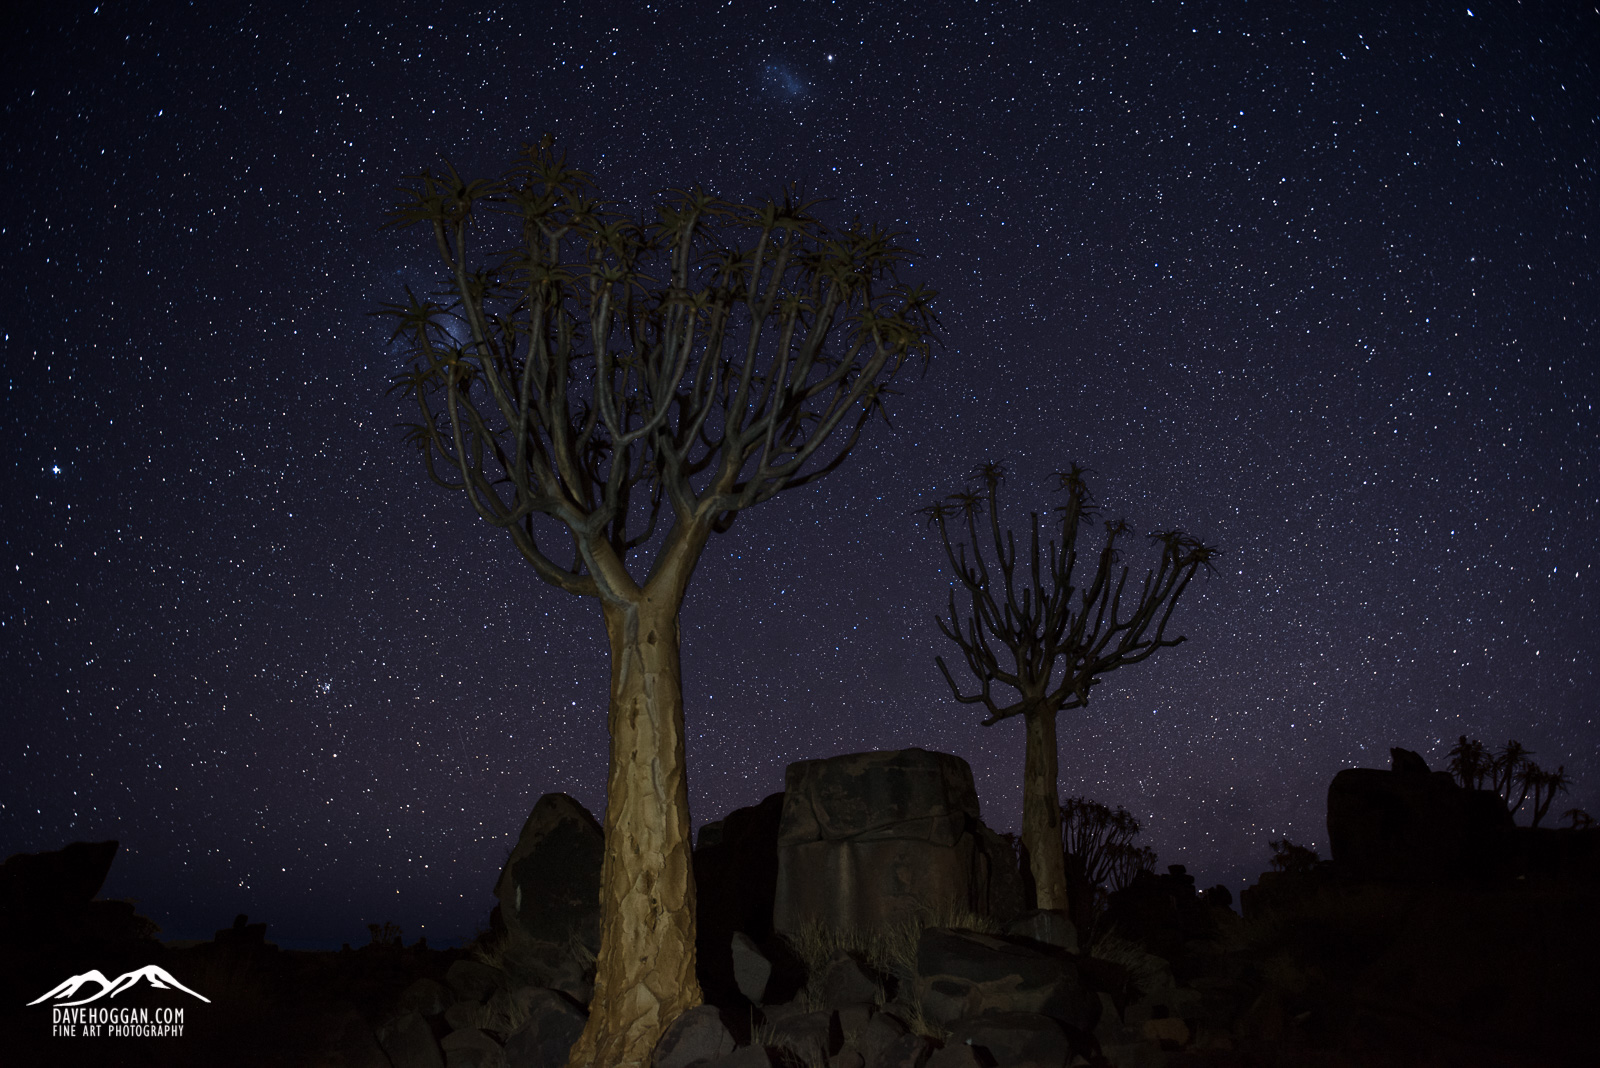 Silhouetted against an impossibly starry sky, quiver tress watch as the Large and Small Magellanic Clouds galaxies pass overhead.